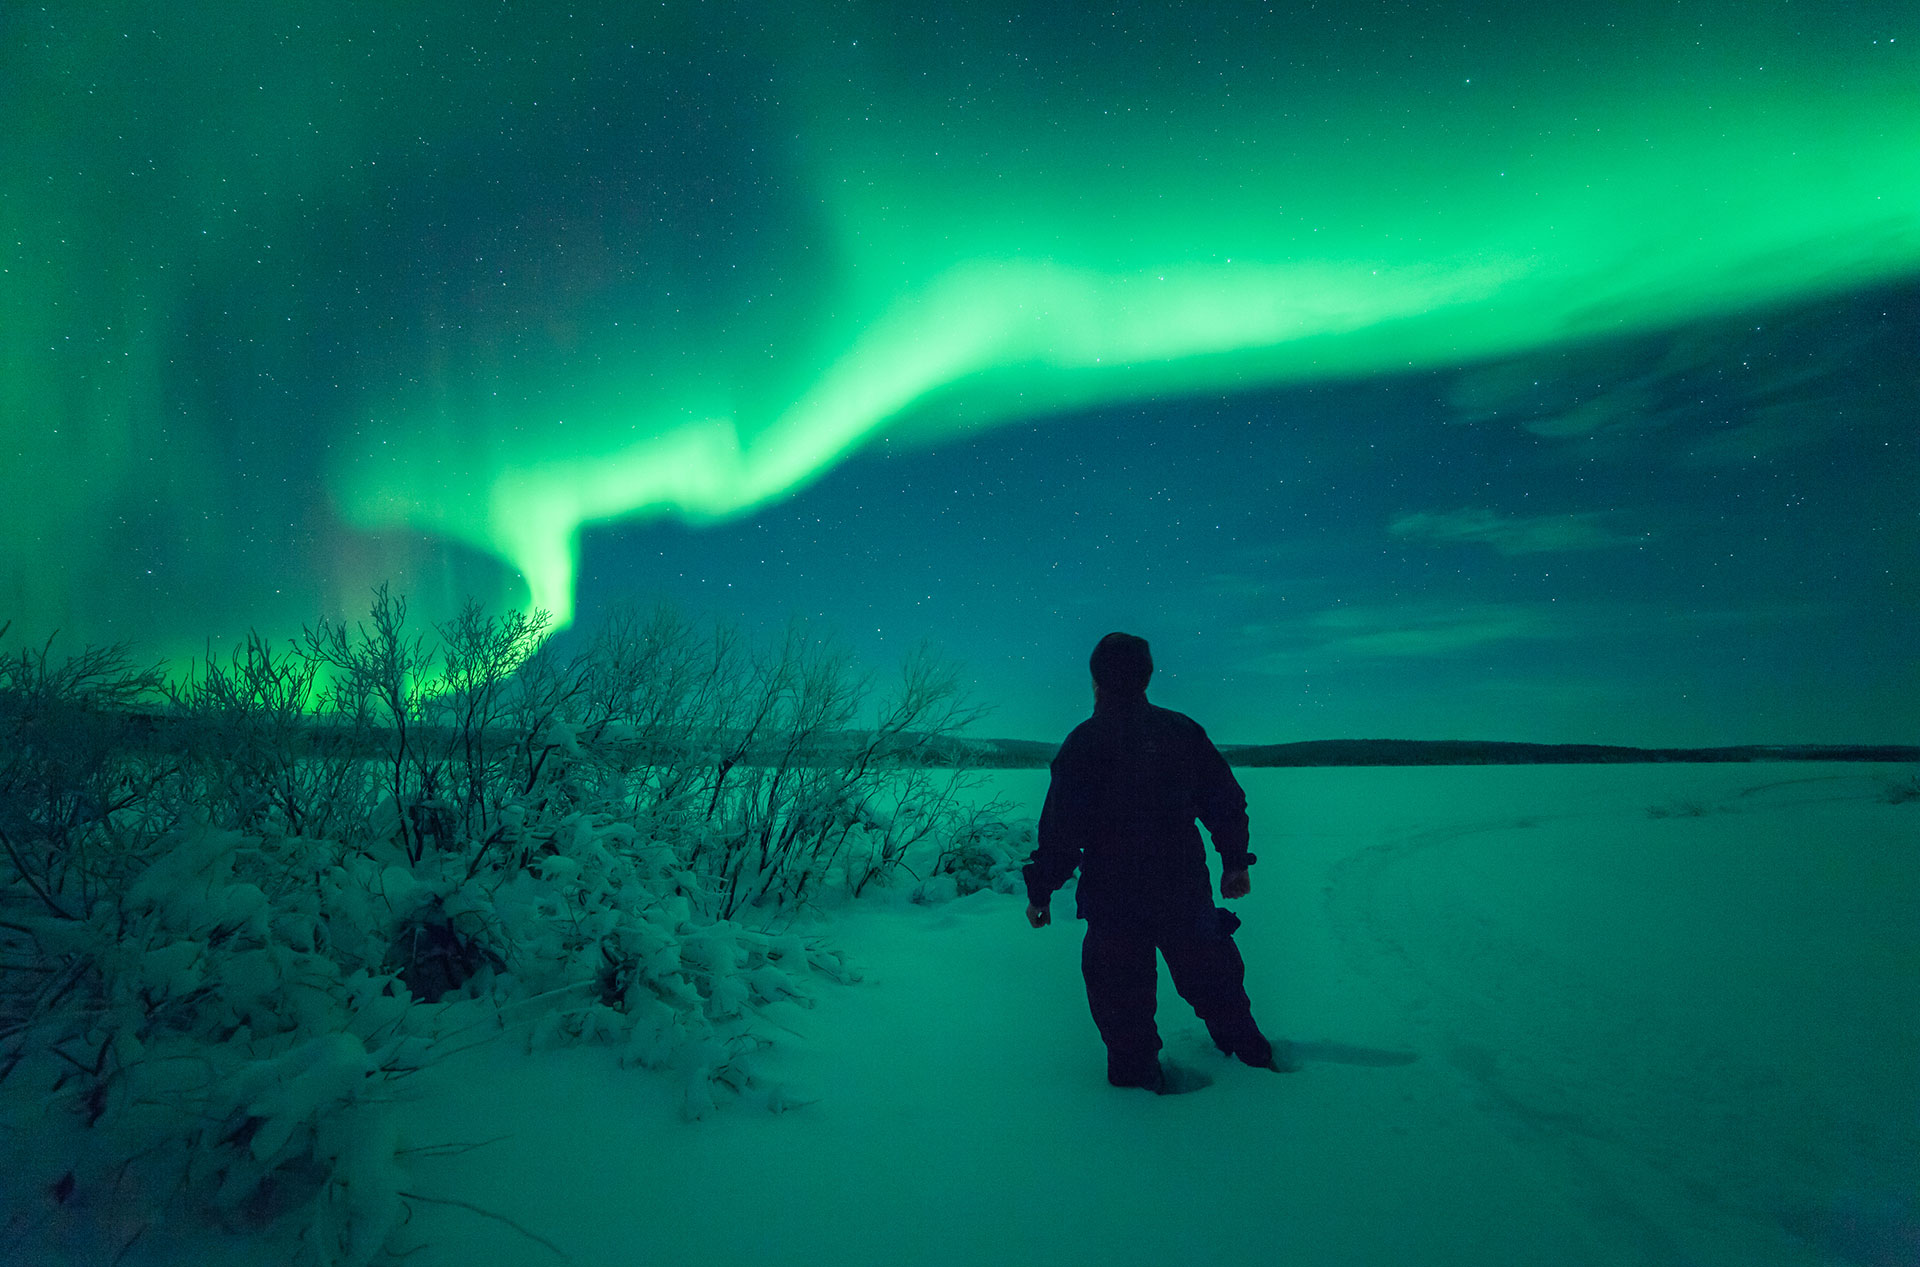 Also Known As Aurora Borealis, The Northern Lights Are Visible On Around  150 Nights A Year In Finnish Lapland. In Rovaniemi, The Spellbinding Astral  Show ...